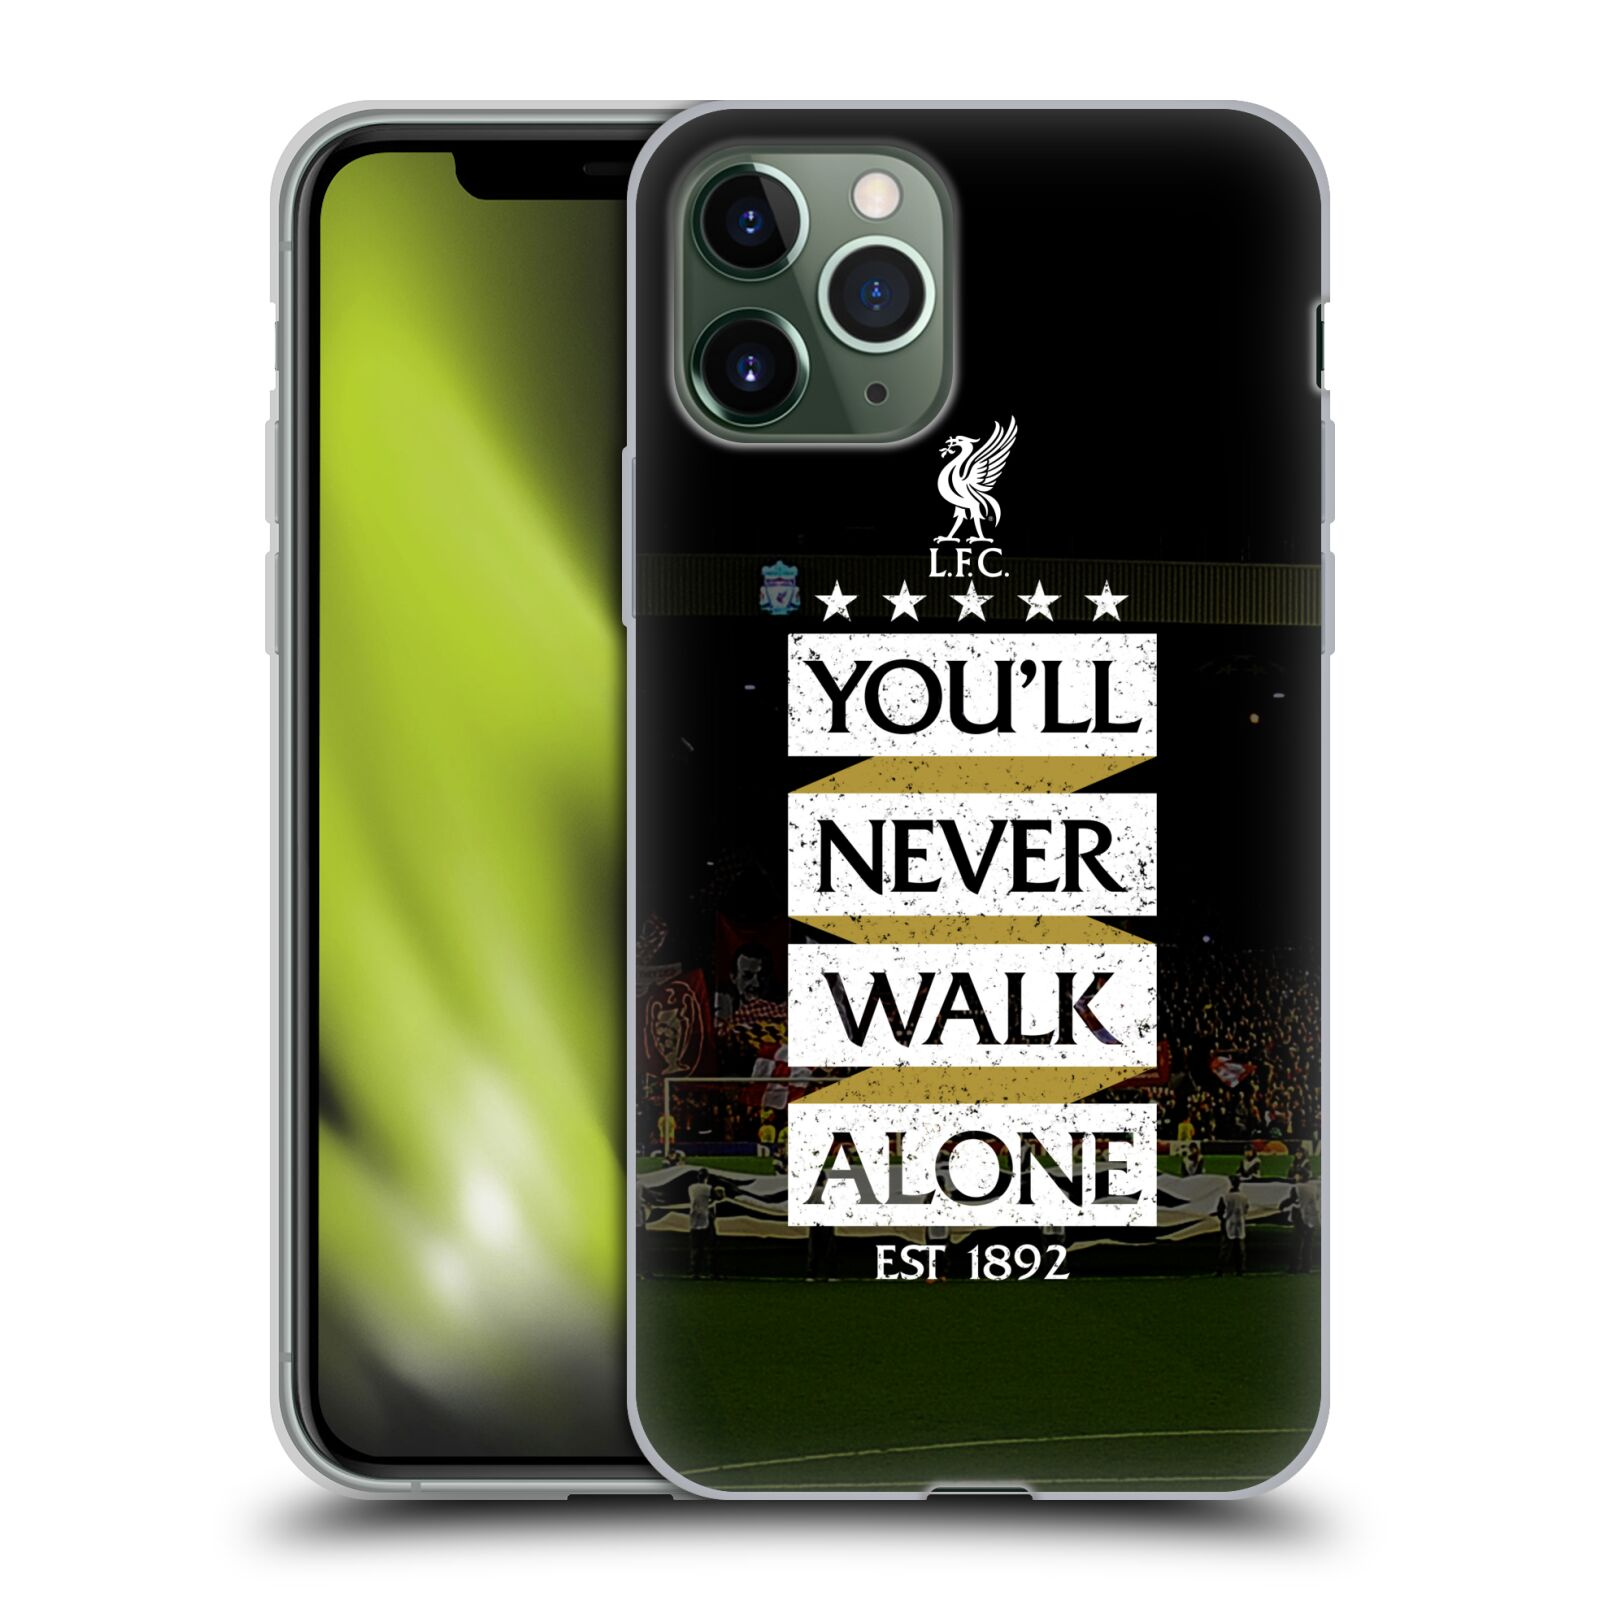 victoria krytu na iphone 7 plus | Silikonové pouzdro na mobil Apple iPhone 11 Pro - Head Case - LFC You'll Never Walk Alone